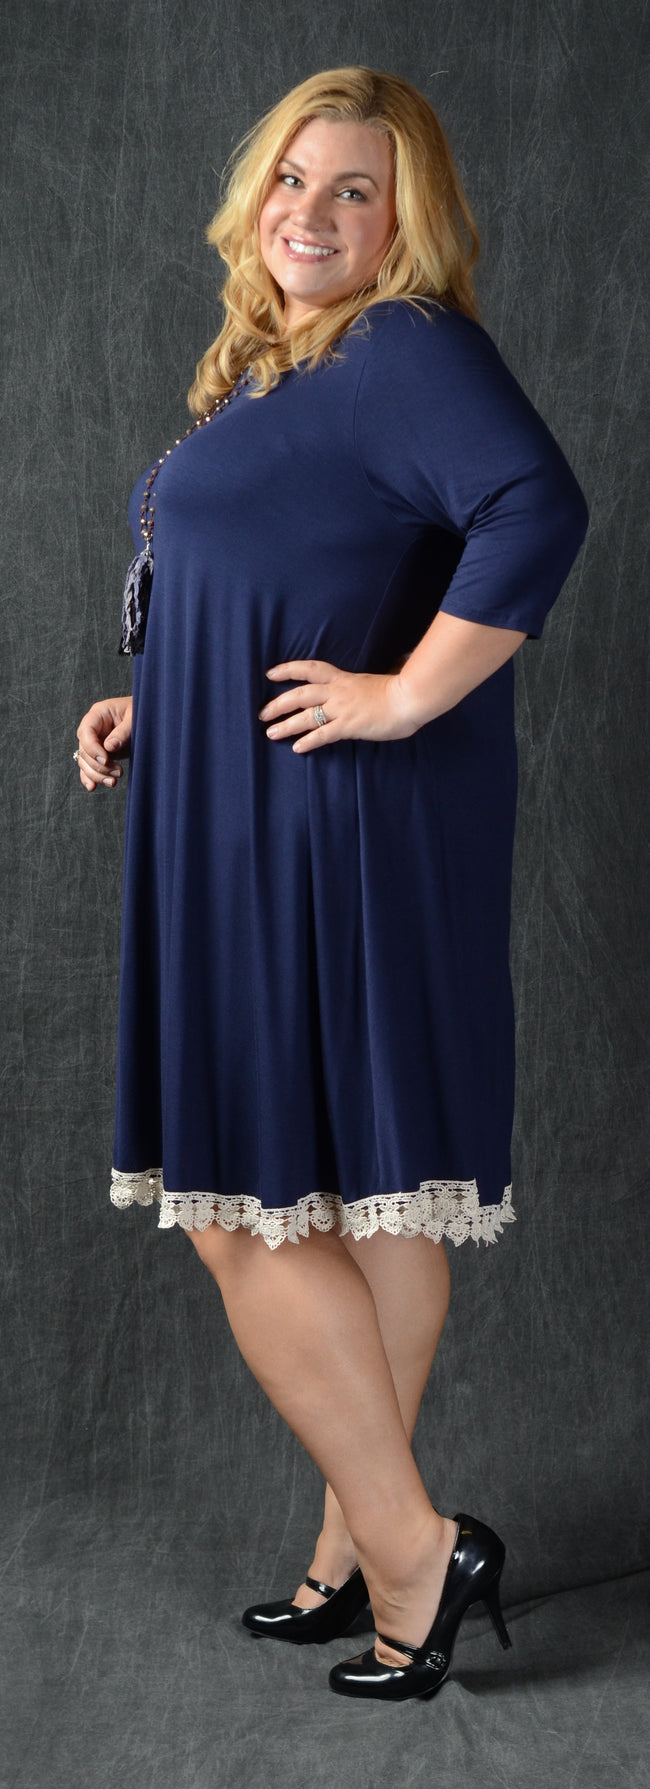 Navy Crochet Hem Dress - www.mycurvystore.com - Curvy Boutique - Plus Size